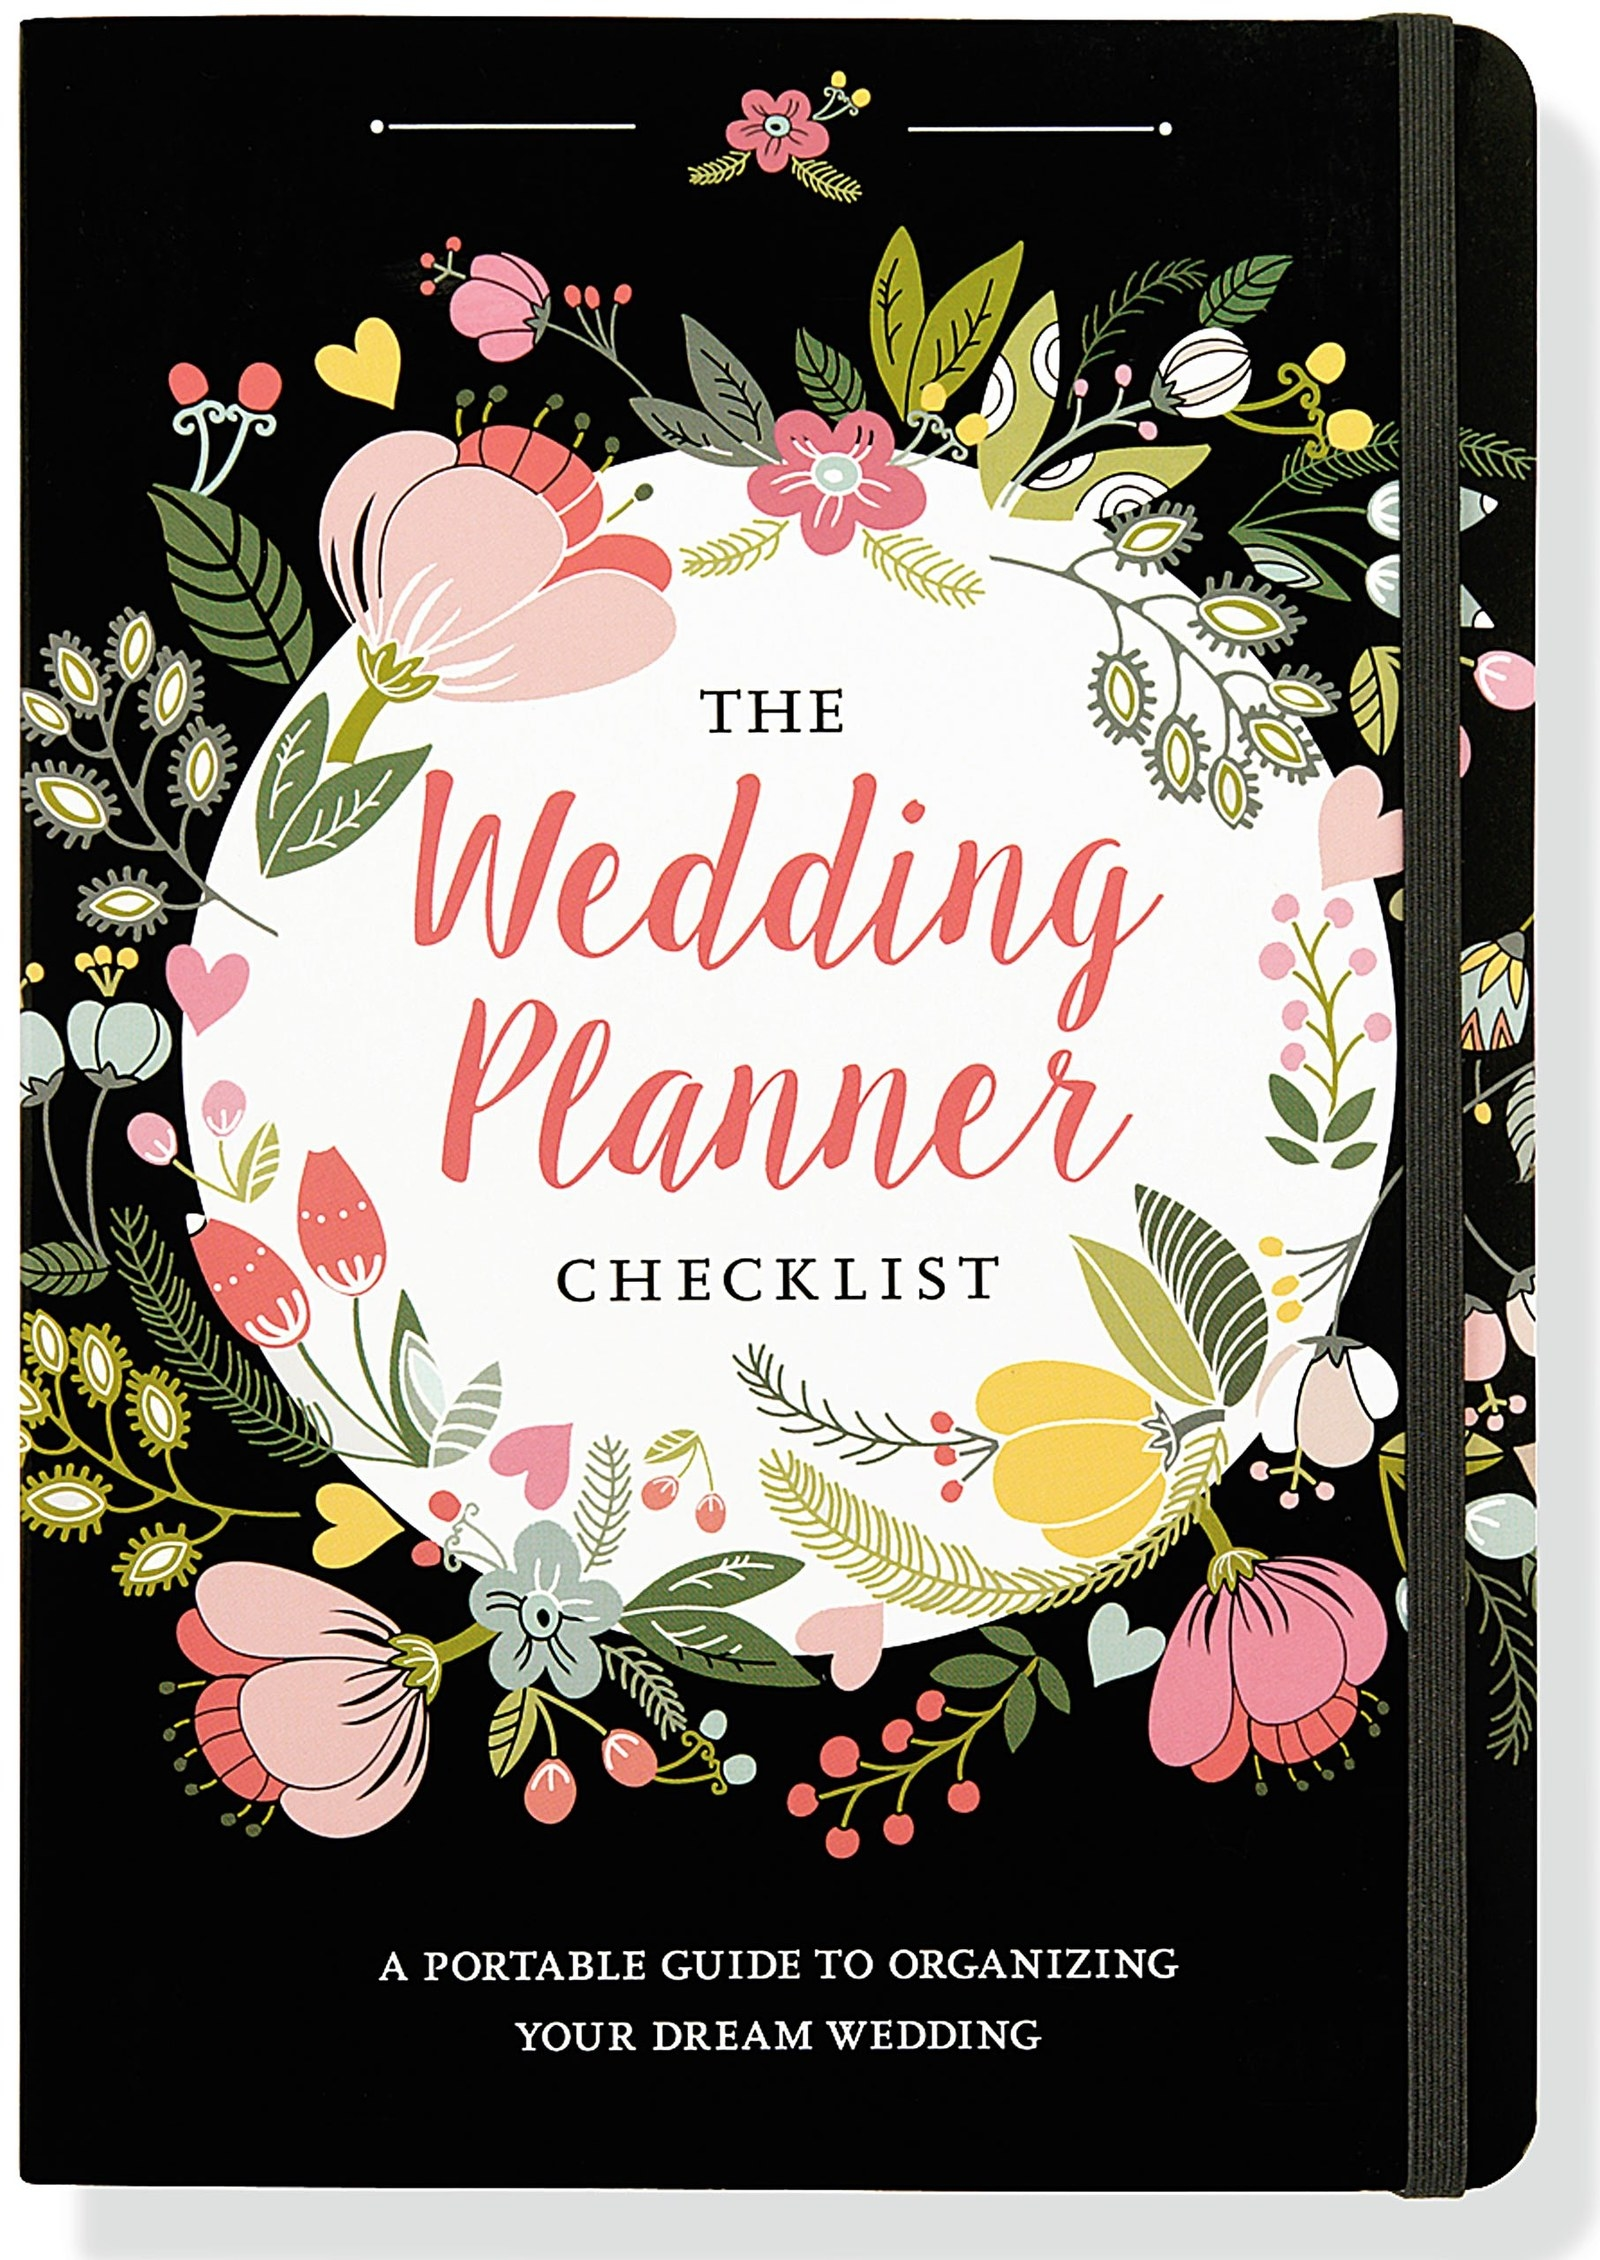 """The small planner has places to jot down notes and checklists so you remember every little detail.Promising review: """"This has been so great to have! I ordered this planner a few weeks after I got engaged just to have something to follow along with the planning process. The huge books seemed too much for me and had pages that I would never use and information I would never read. This compact version can fit in your purse but also has all the pages to write out what you talk to the caterer/ baker/florist/etc., about. I love this planner!"""" —Amazon CustomerPrice: $7.80"""